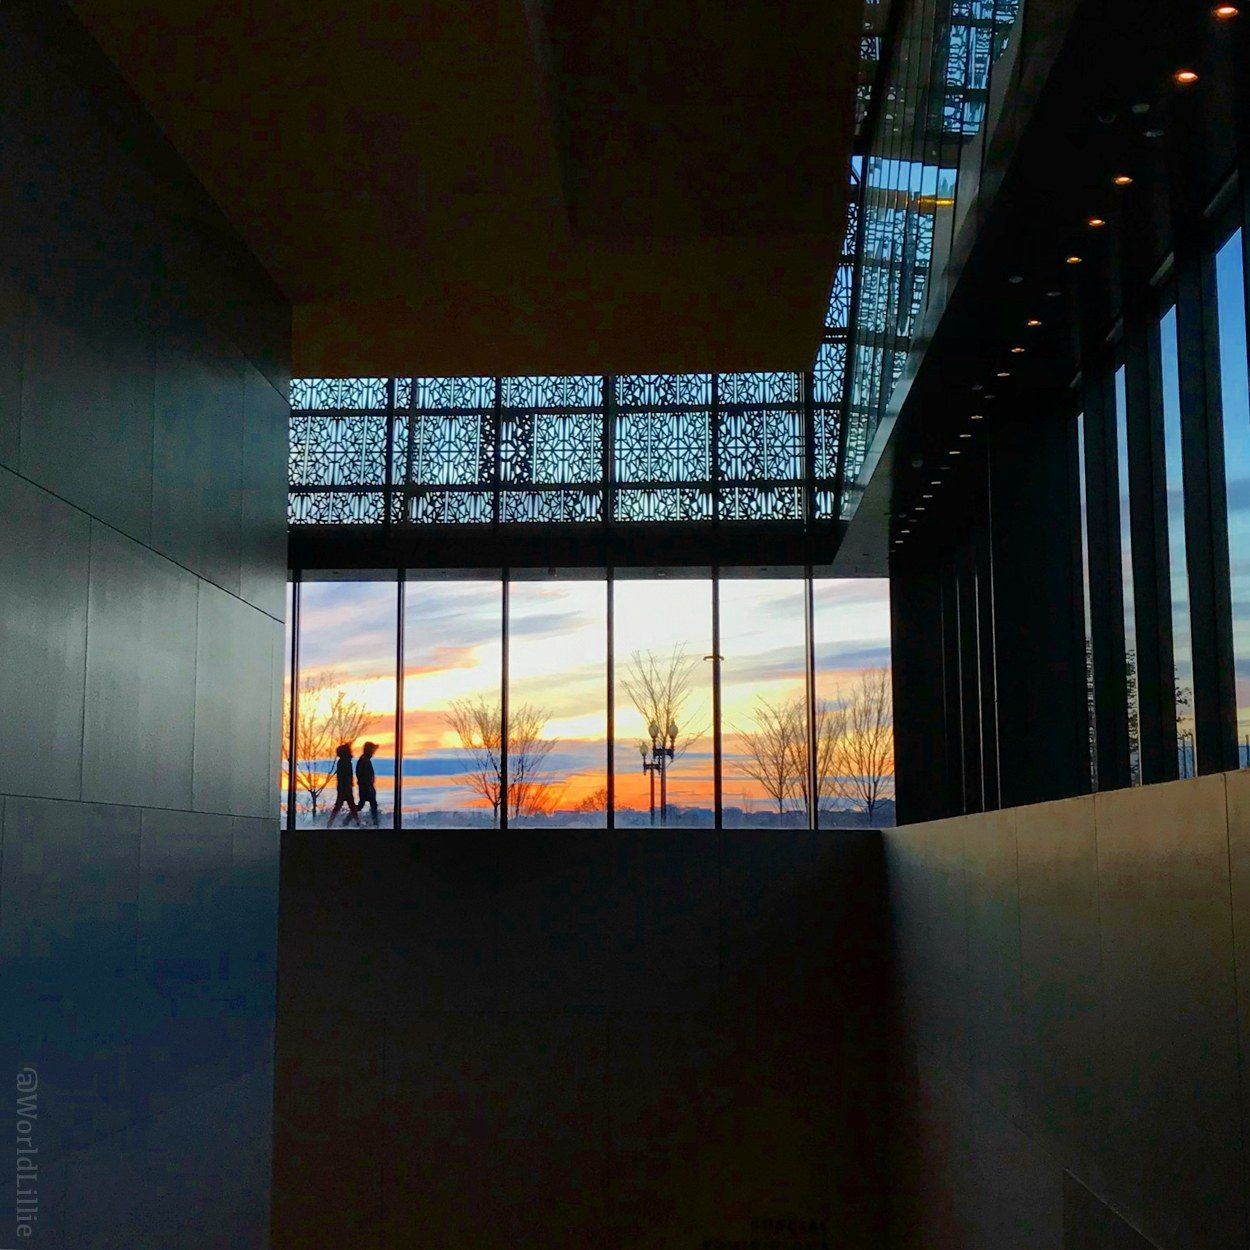 Sunset at DC's phenomenal National Museum of African-American History and Culture, which I visited in December.